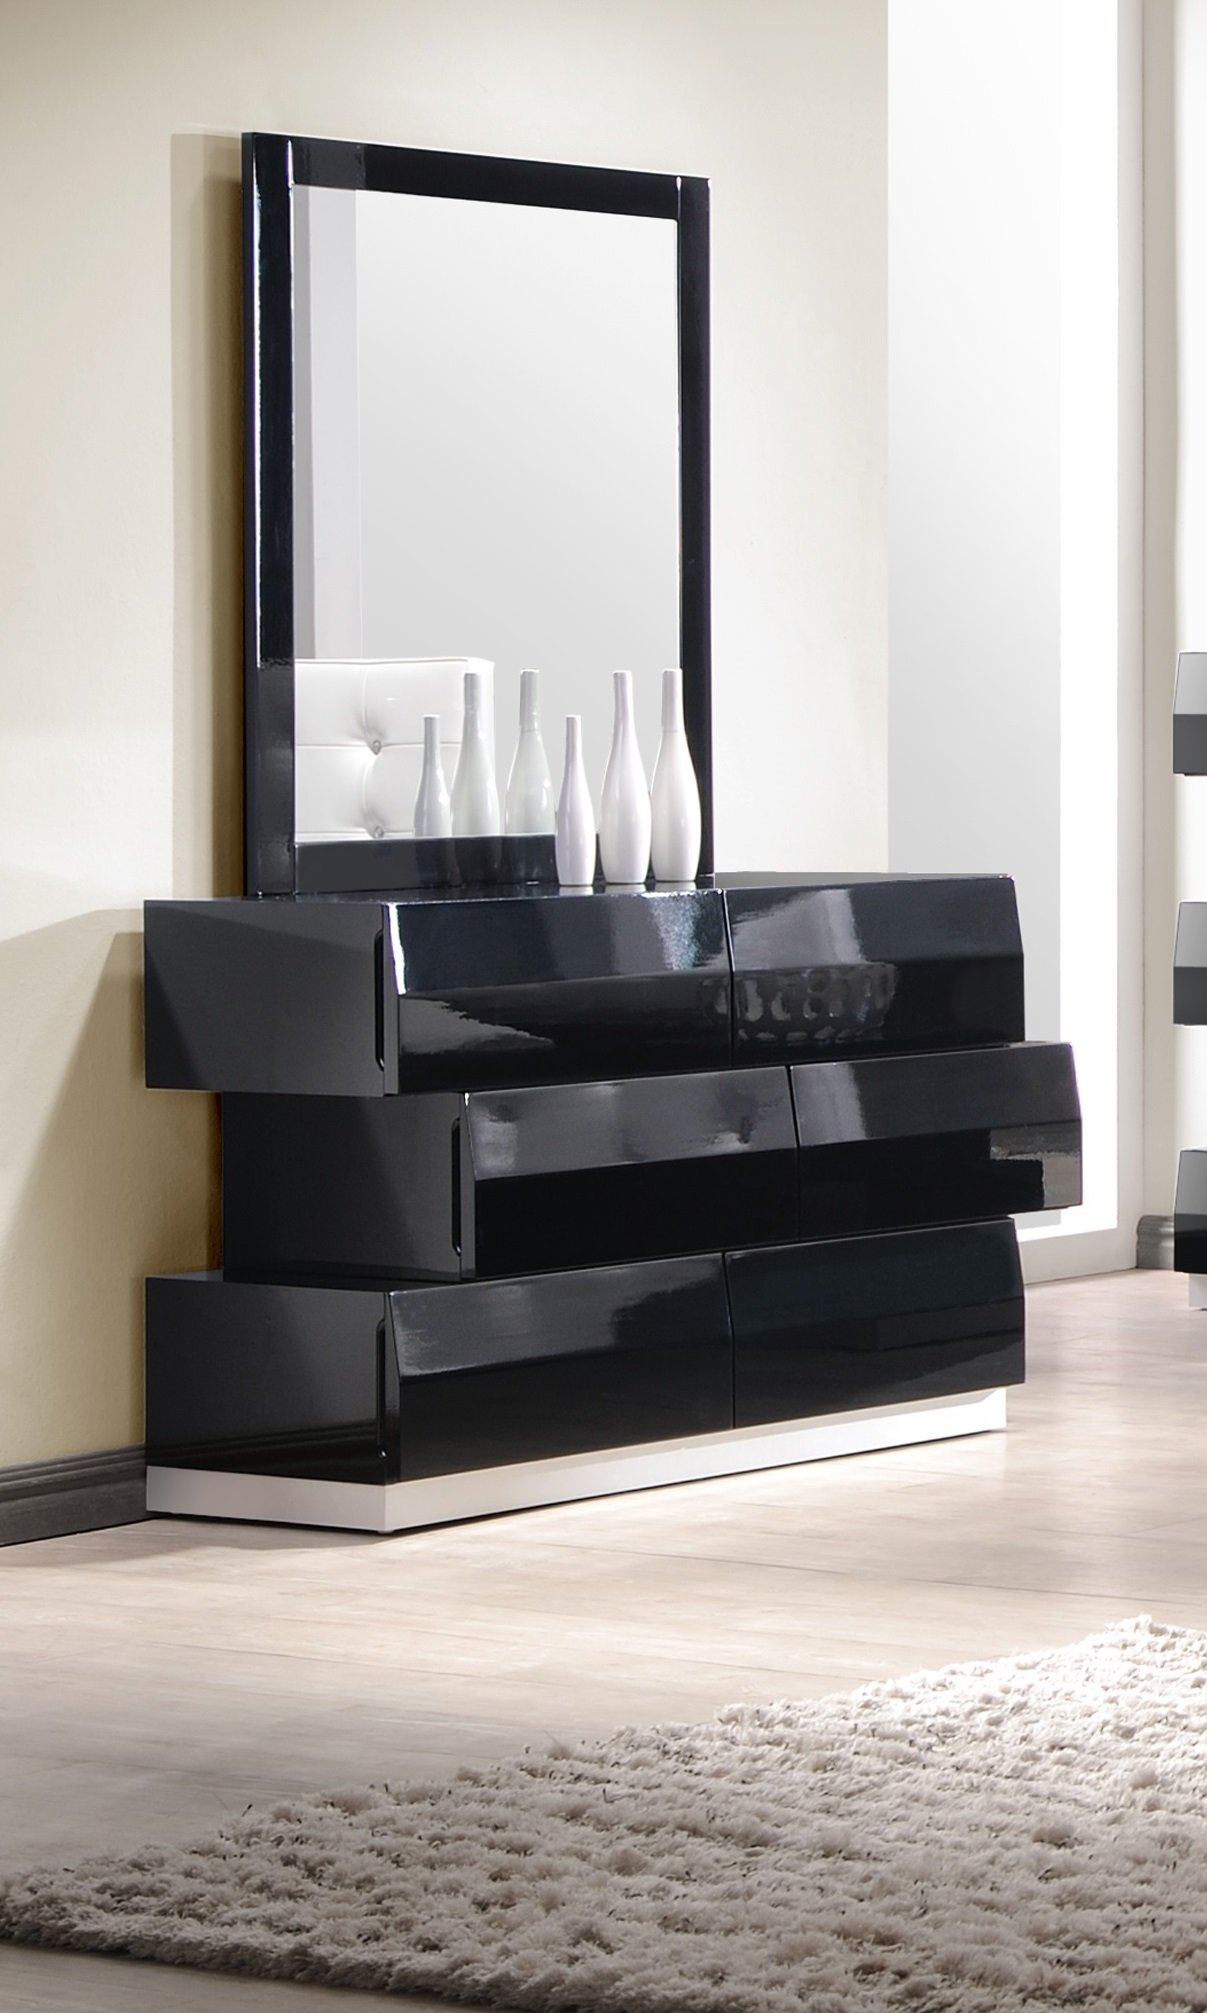 J and M Furniture Milan Dresser & Mirror in Black by J&M Furniture